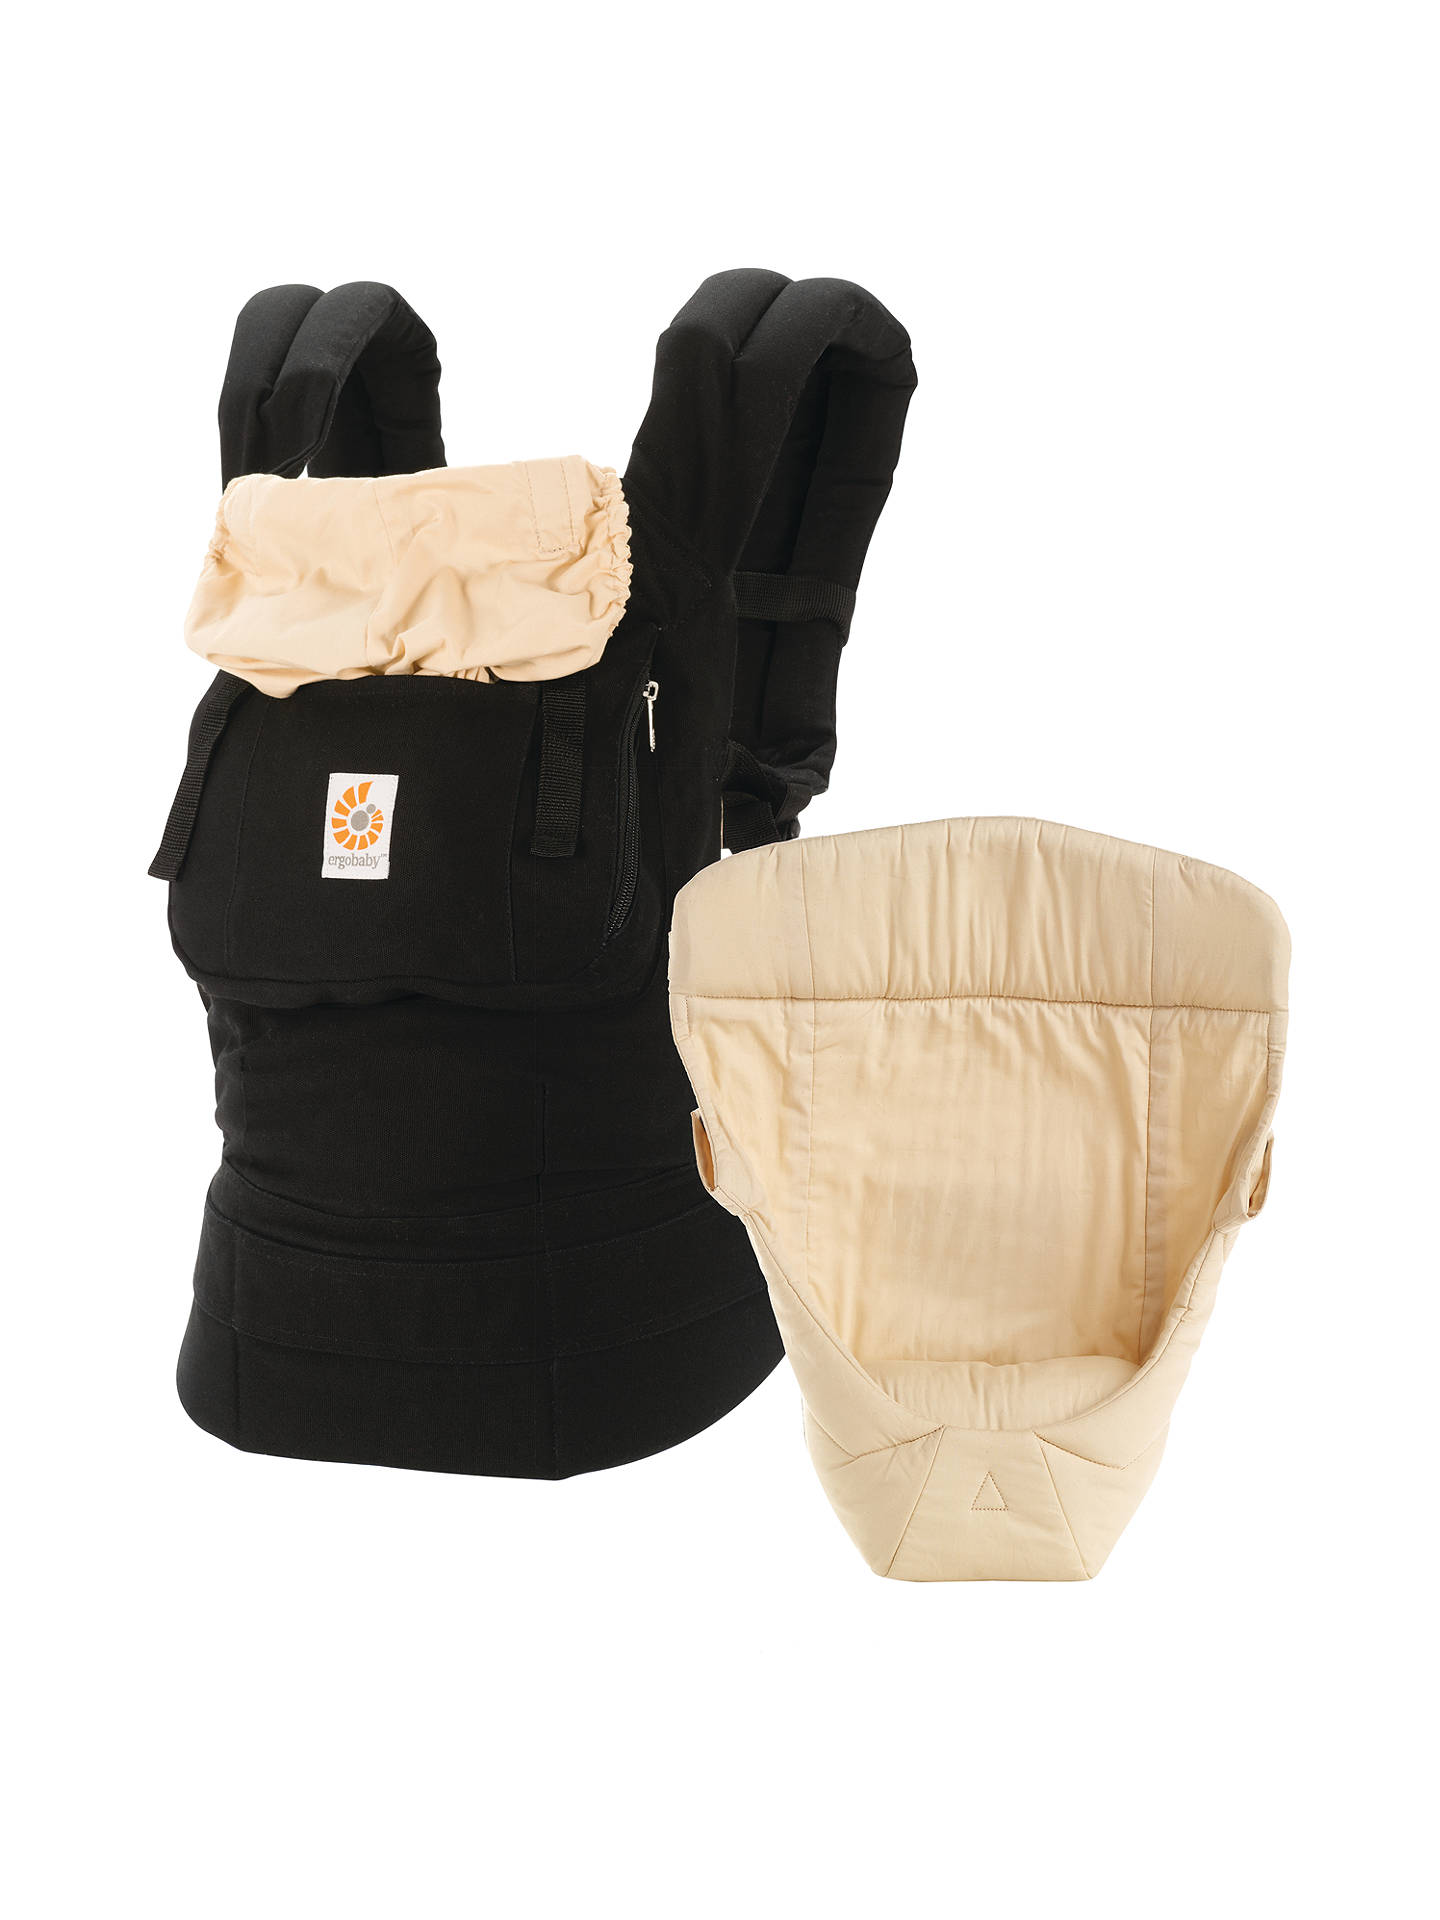 e00b6665c84 Buy Ergobaby Original Baby Carrier   Infant Insert